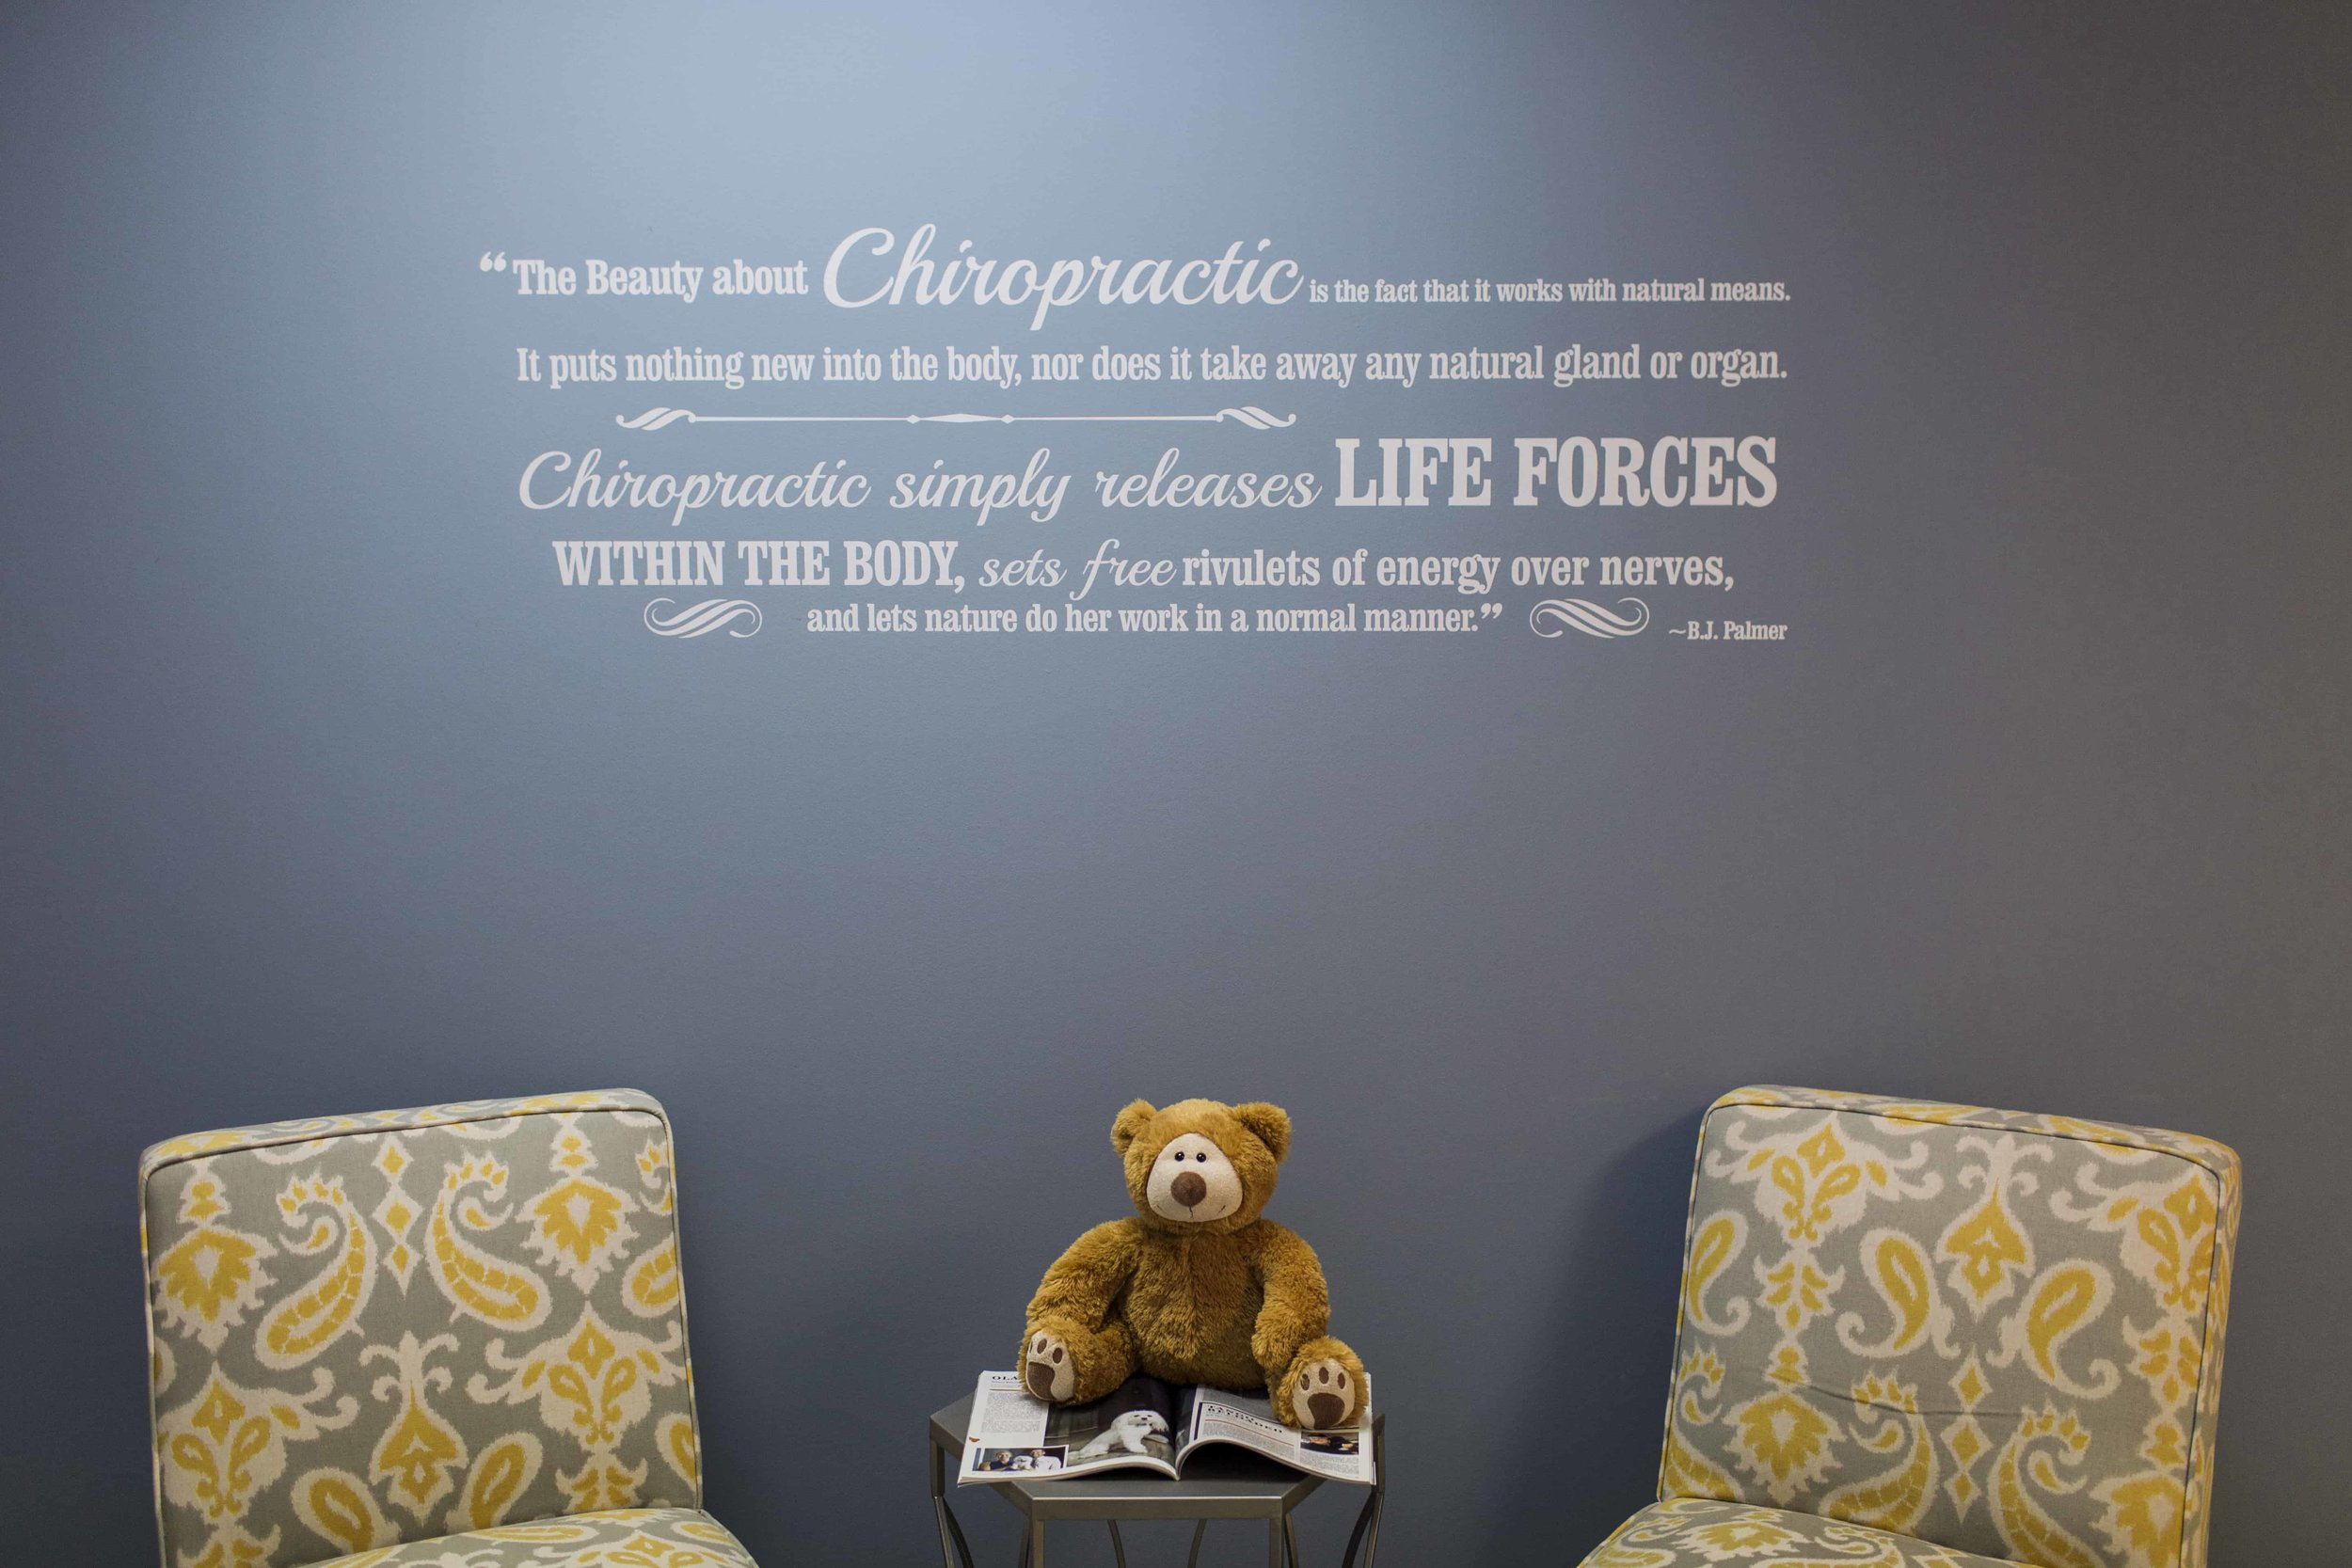 Wall graphics at Achieve Balance Chiropractic office in Columbia, MO